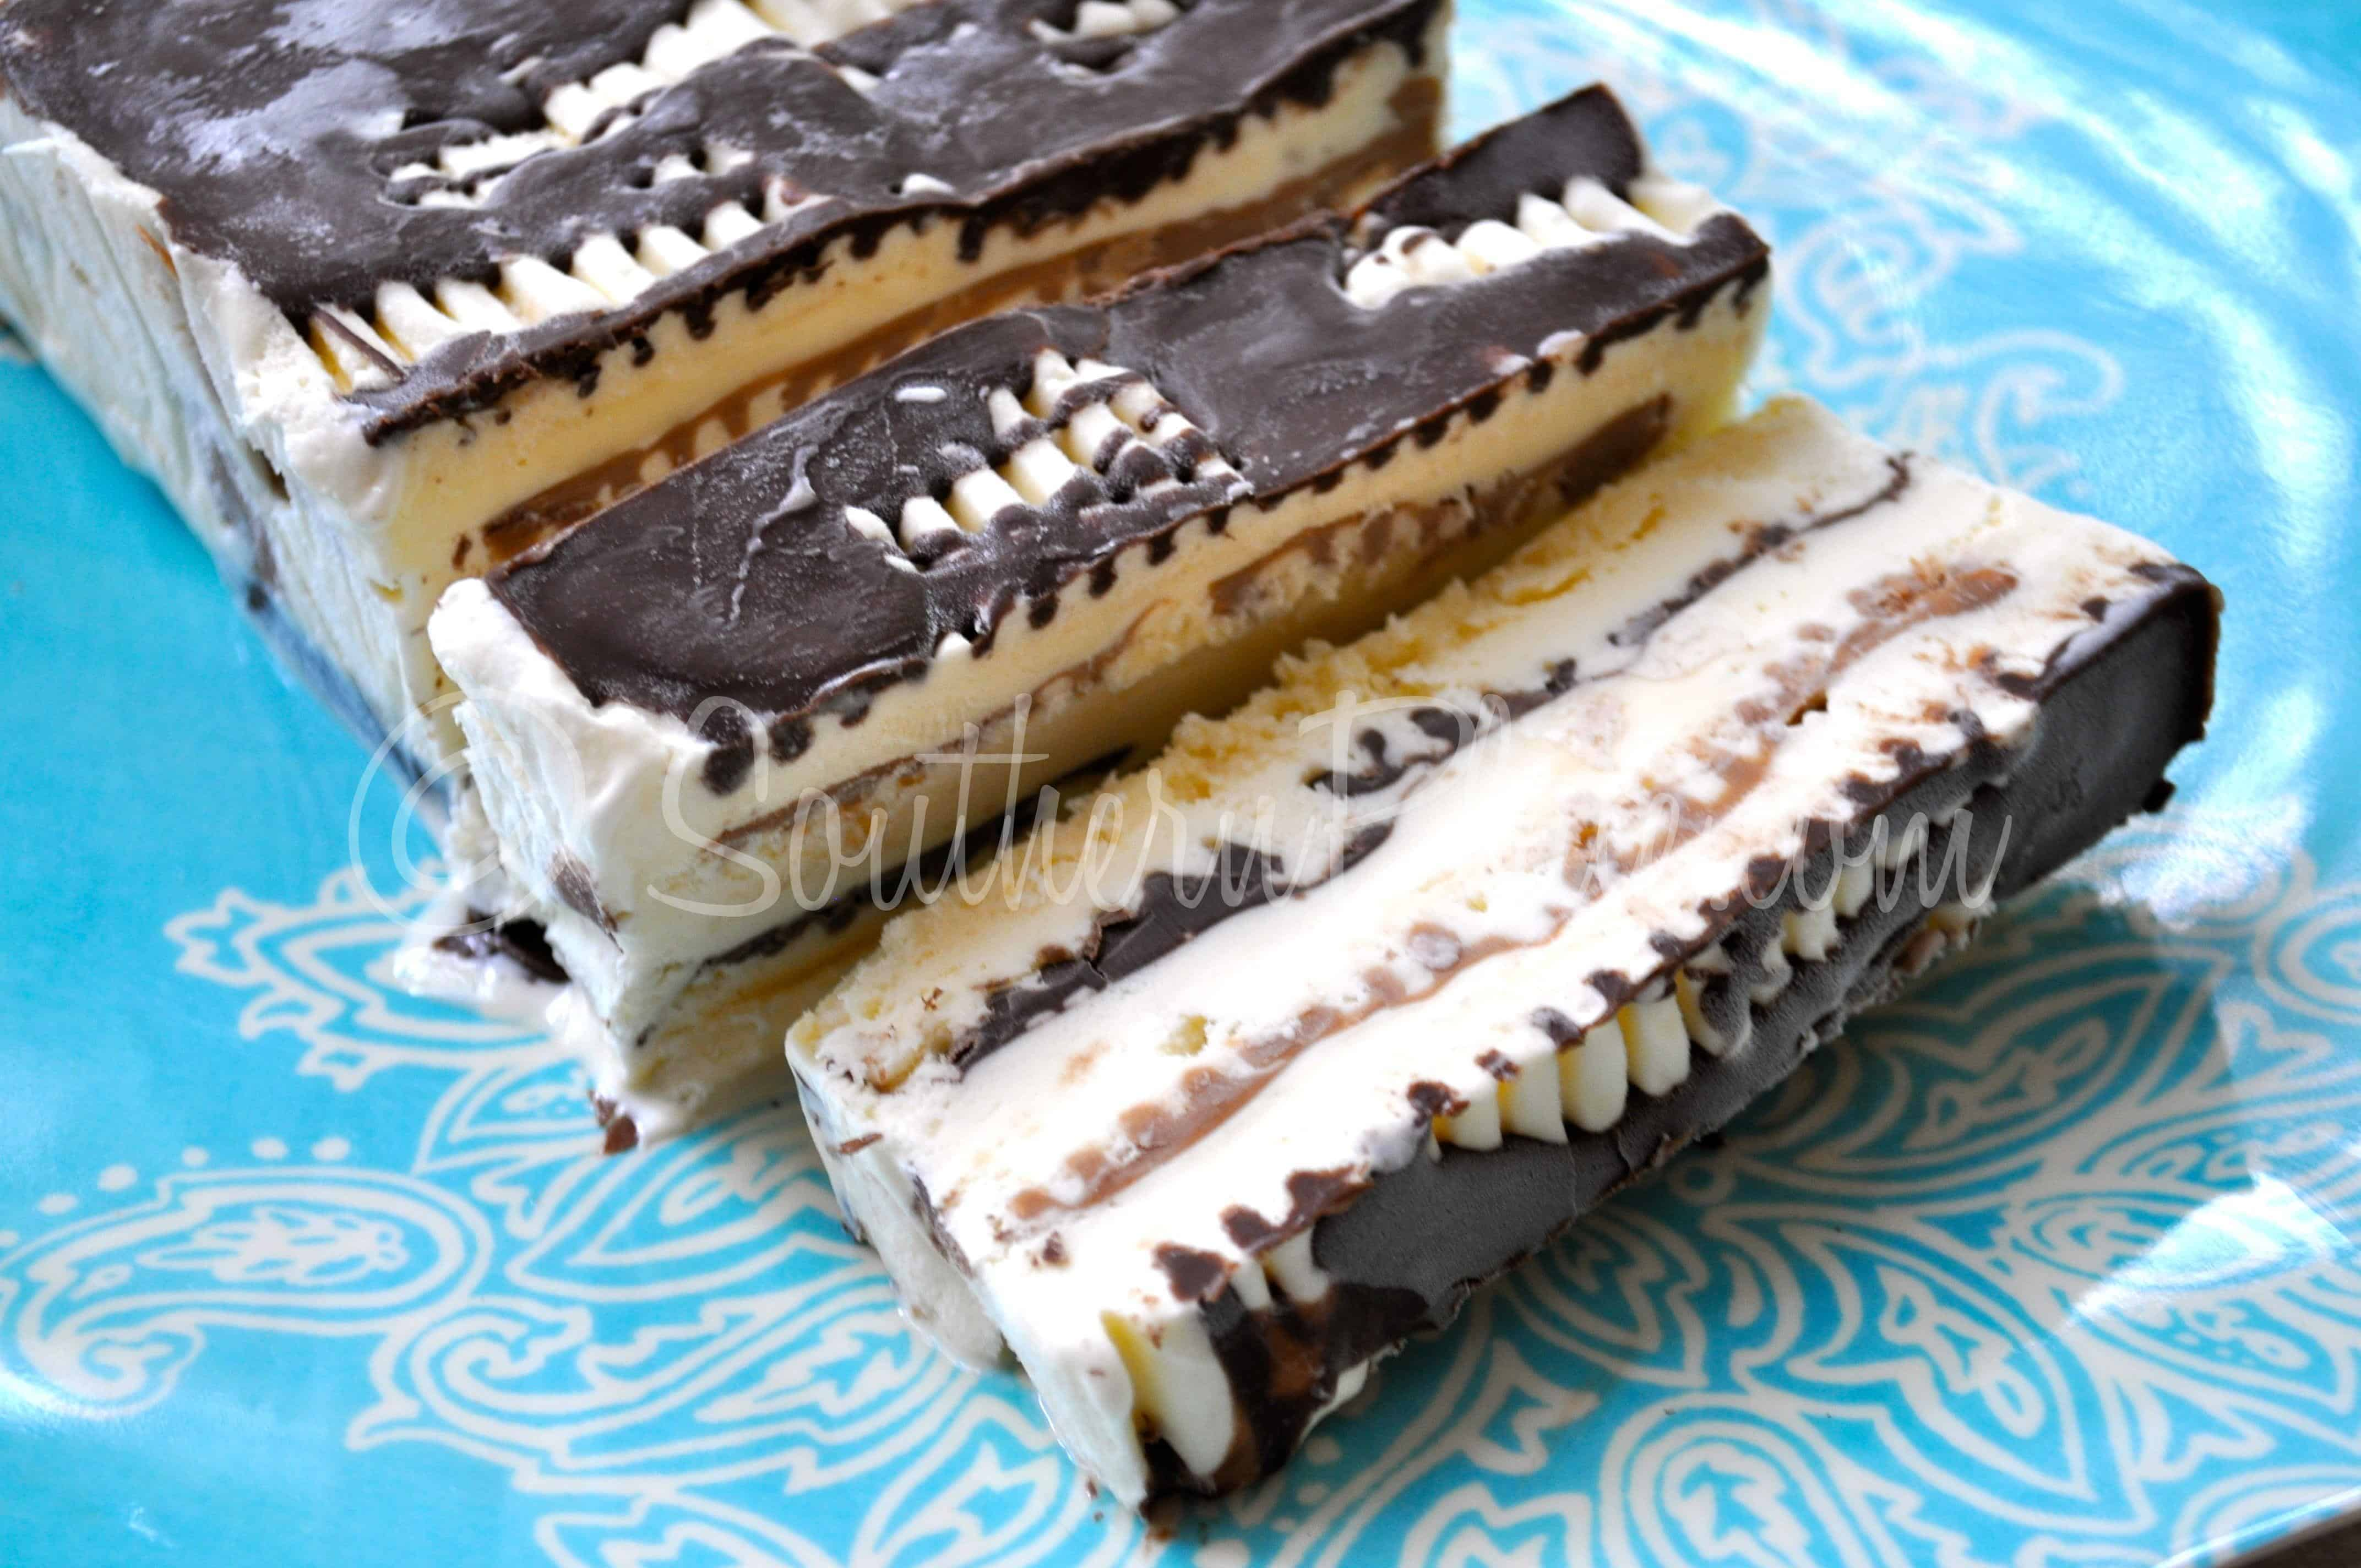 Viennetta Ice Cream Cake